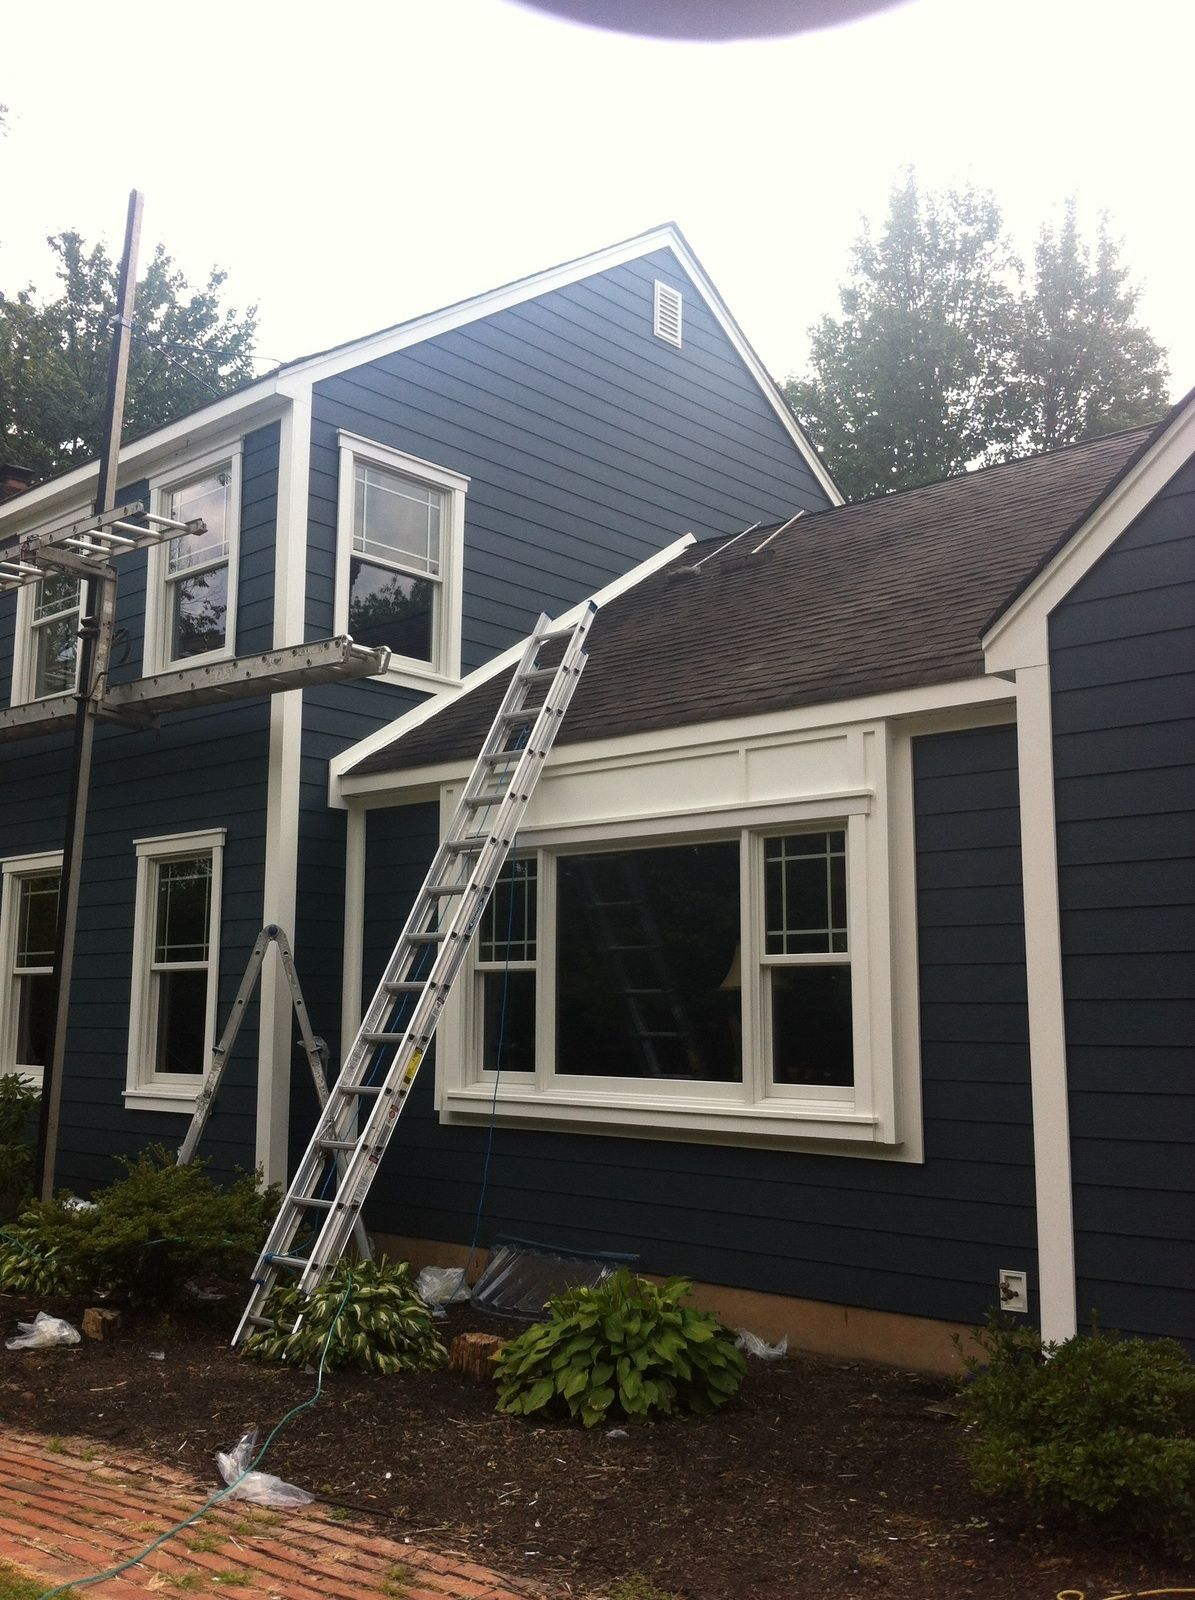 Royal Celect Siding Installers In Morris County Royal Celect Siding Installers In Bergen County